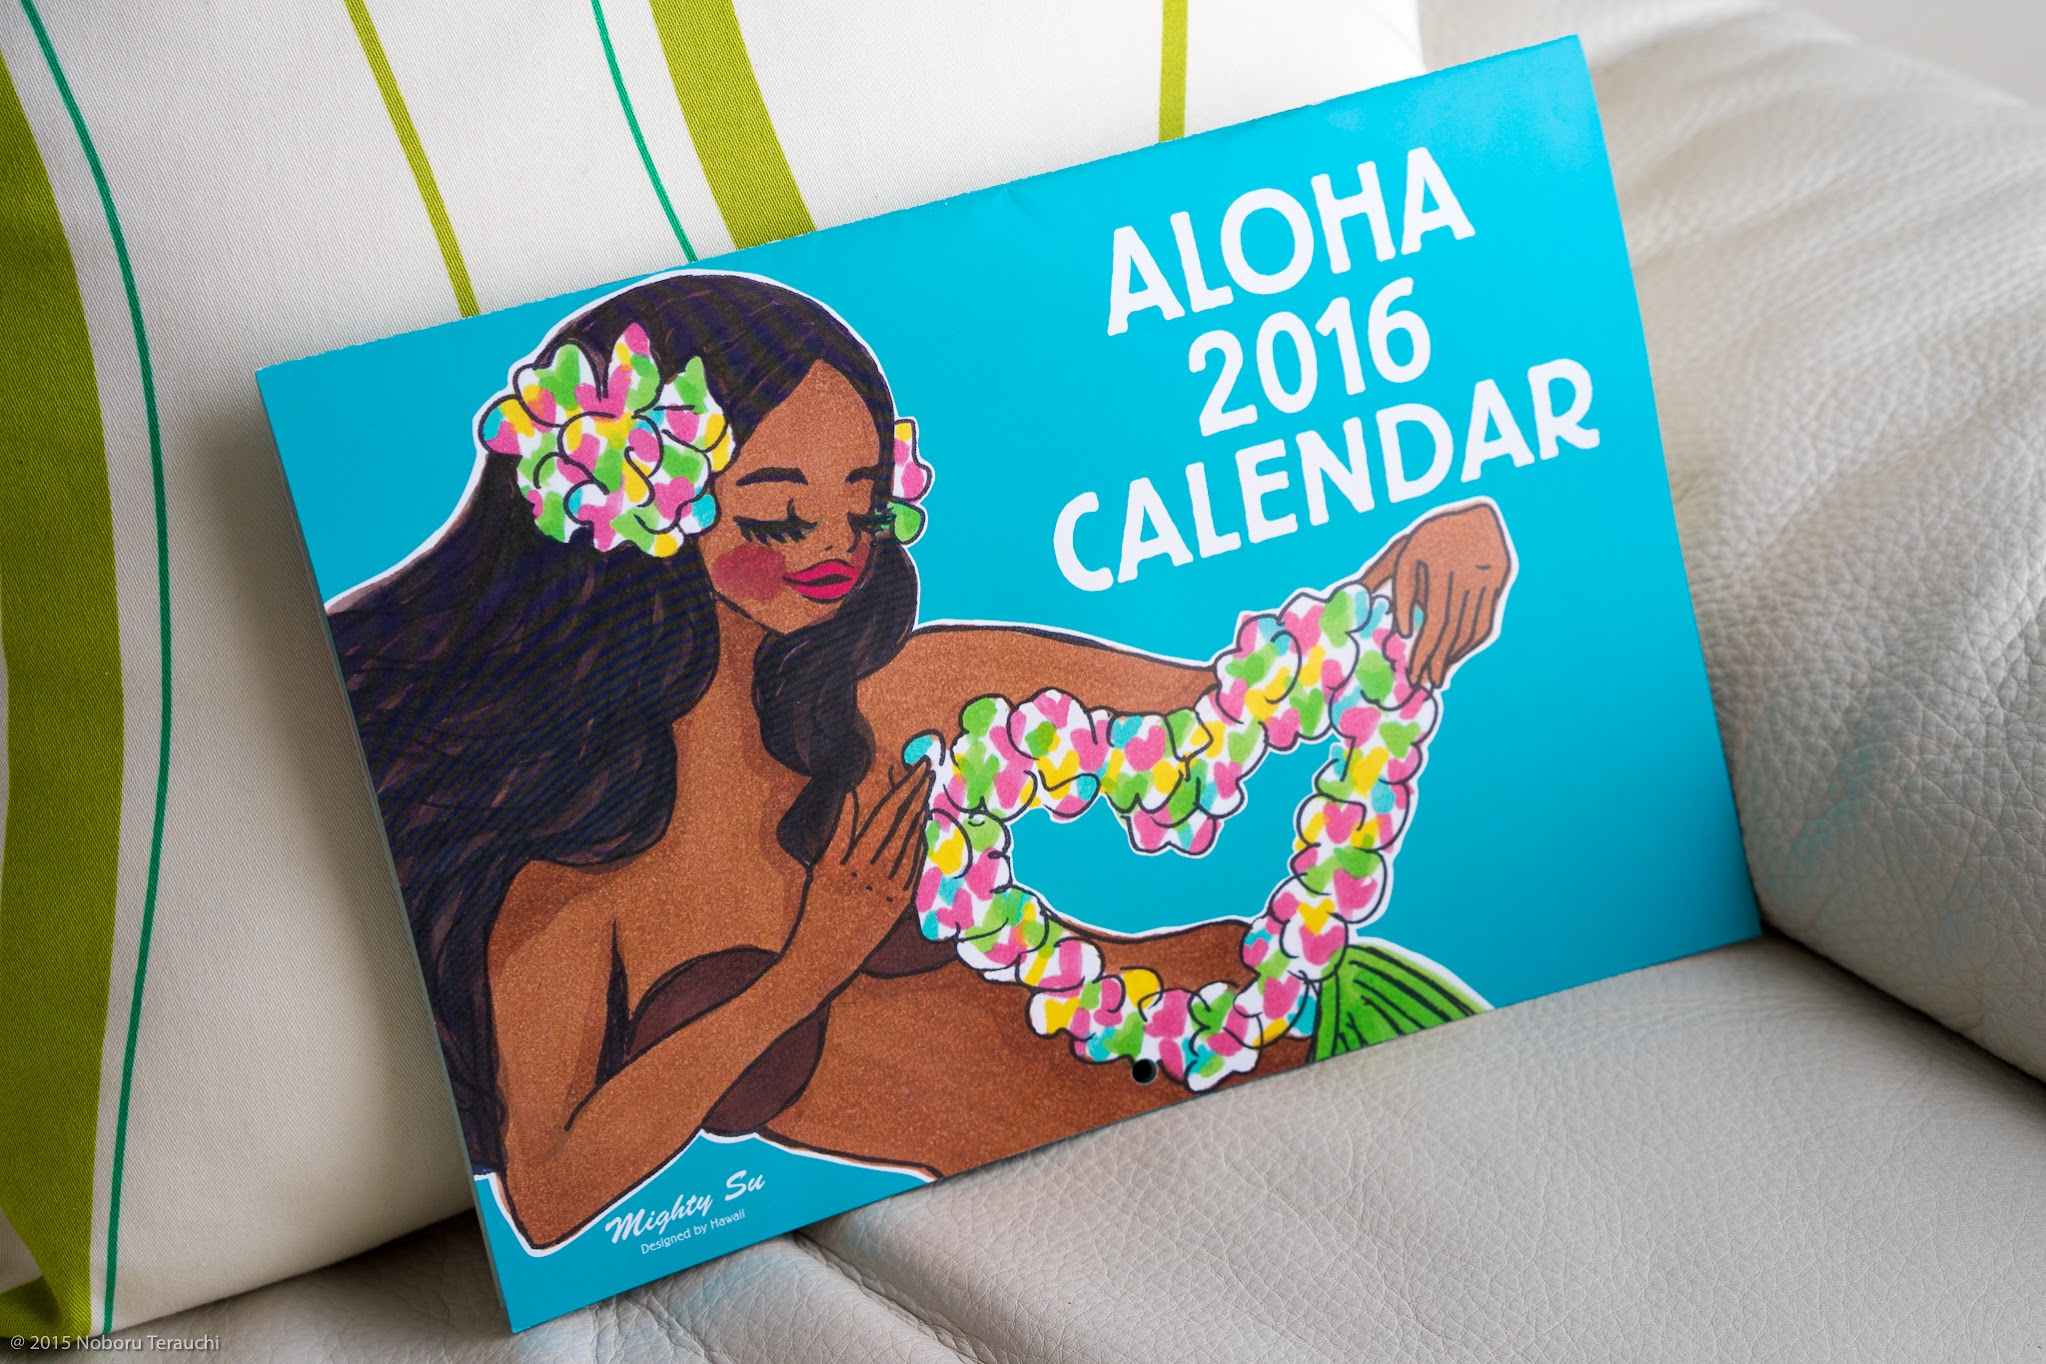 ALOHA 2016 CALENDAR ARTWORK BY MIGHT SU